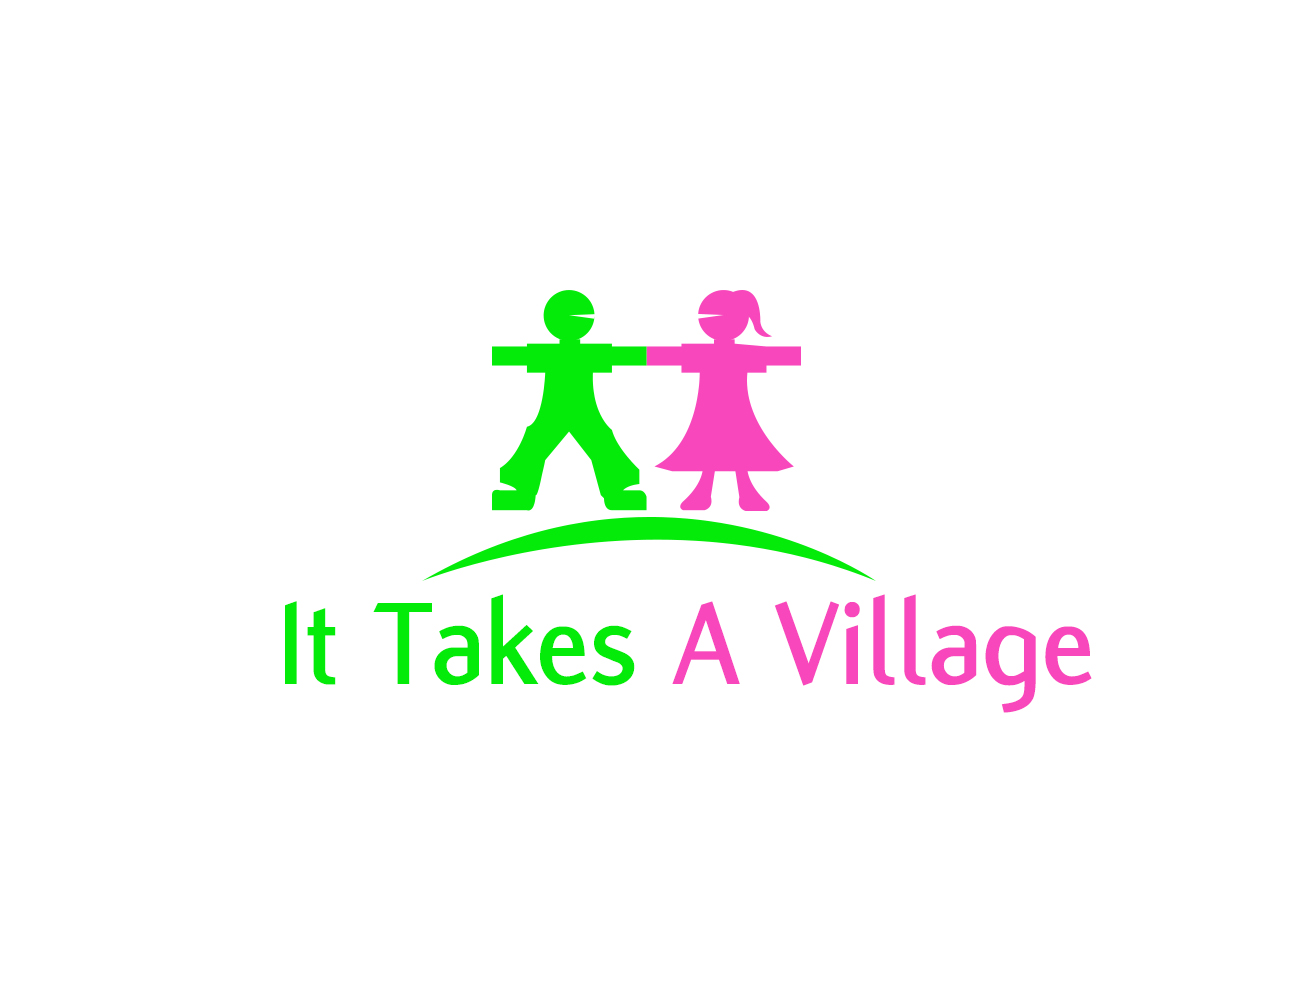 Logo Design by fireacefist - Entry No. 29 in the Logo Design Contest Captivating Logo Design for It Takes A Village.